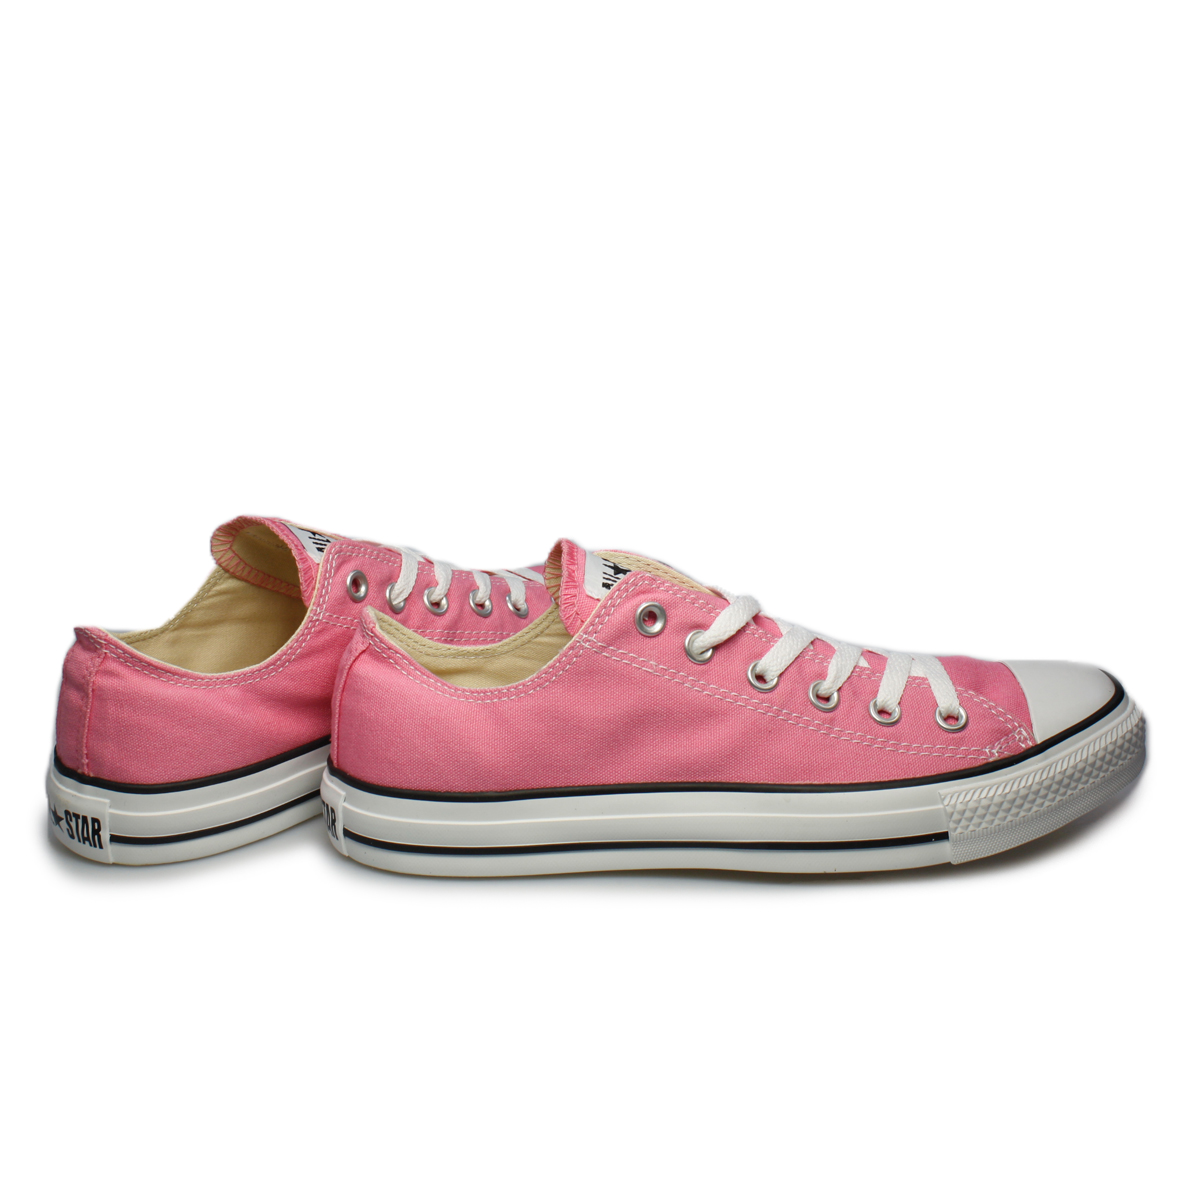 Converse All Star Pink White Canvas Trainers Sneakers ...